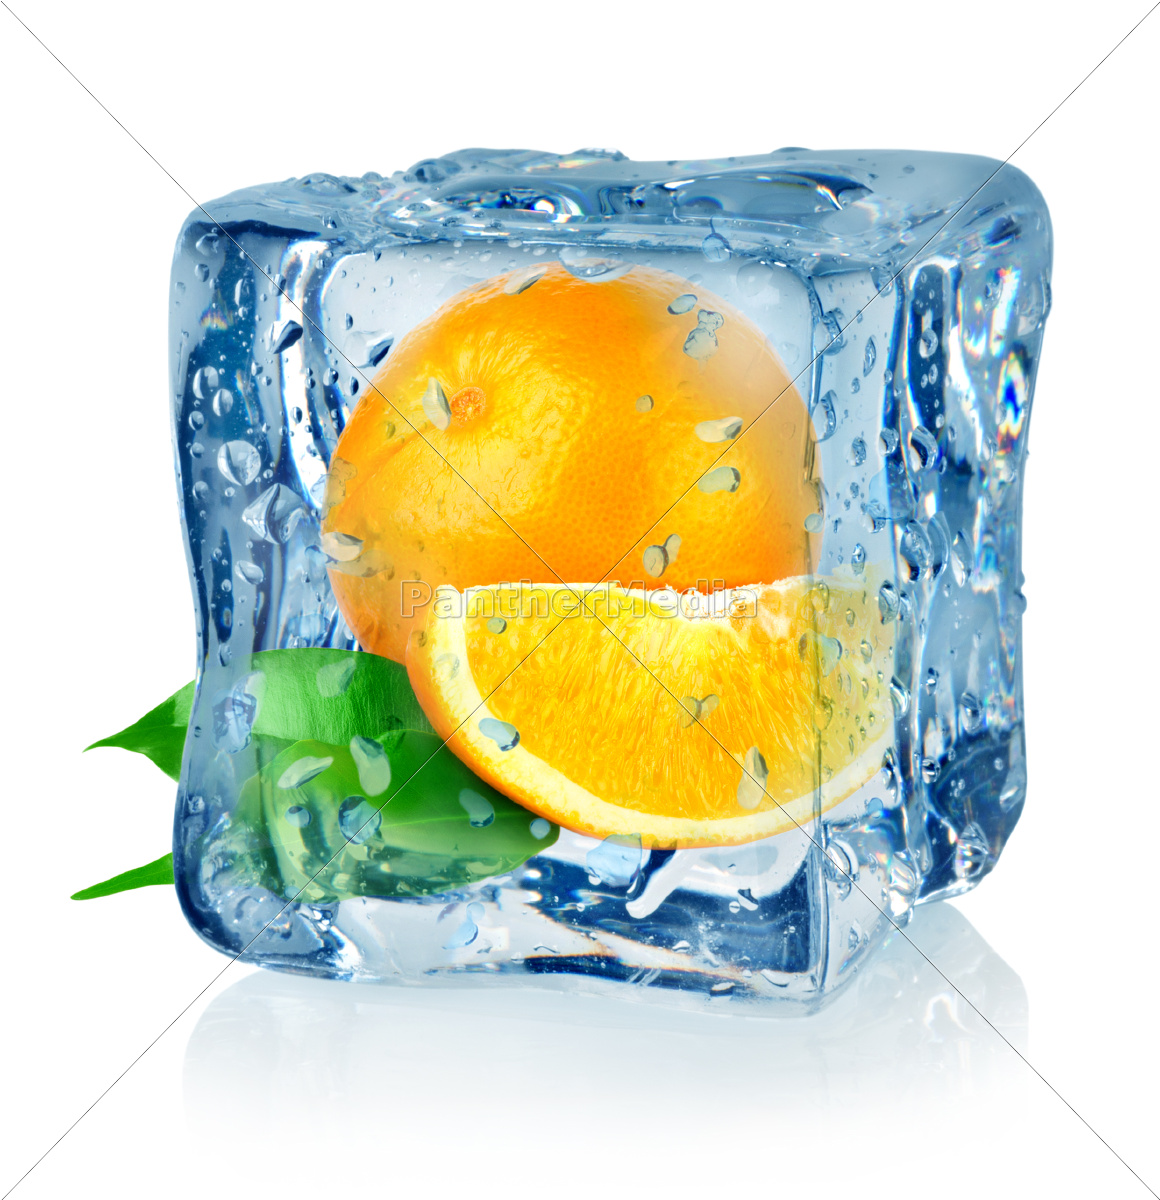 ice, cube, and, orange - 10124651